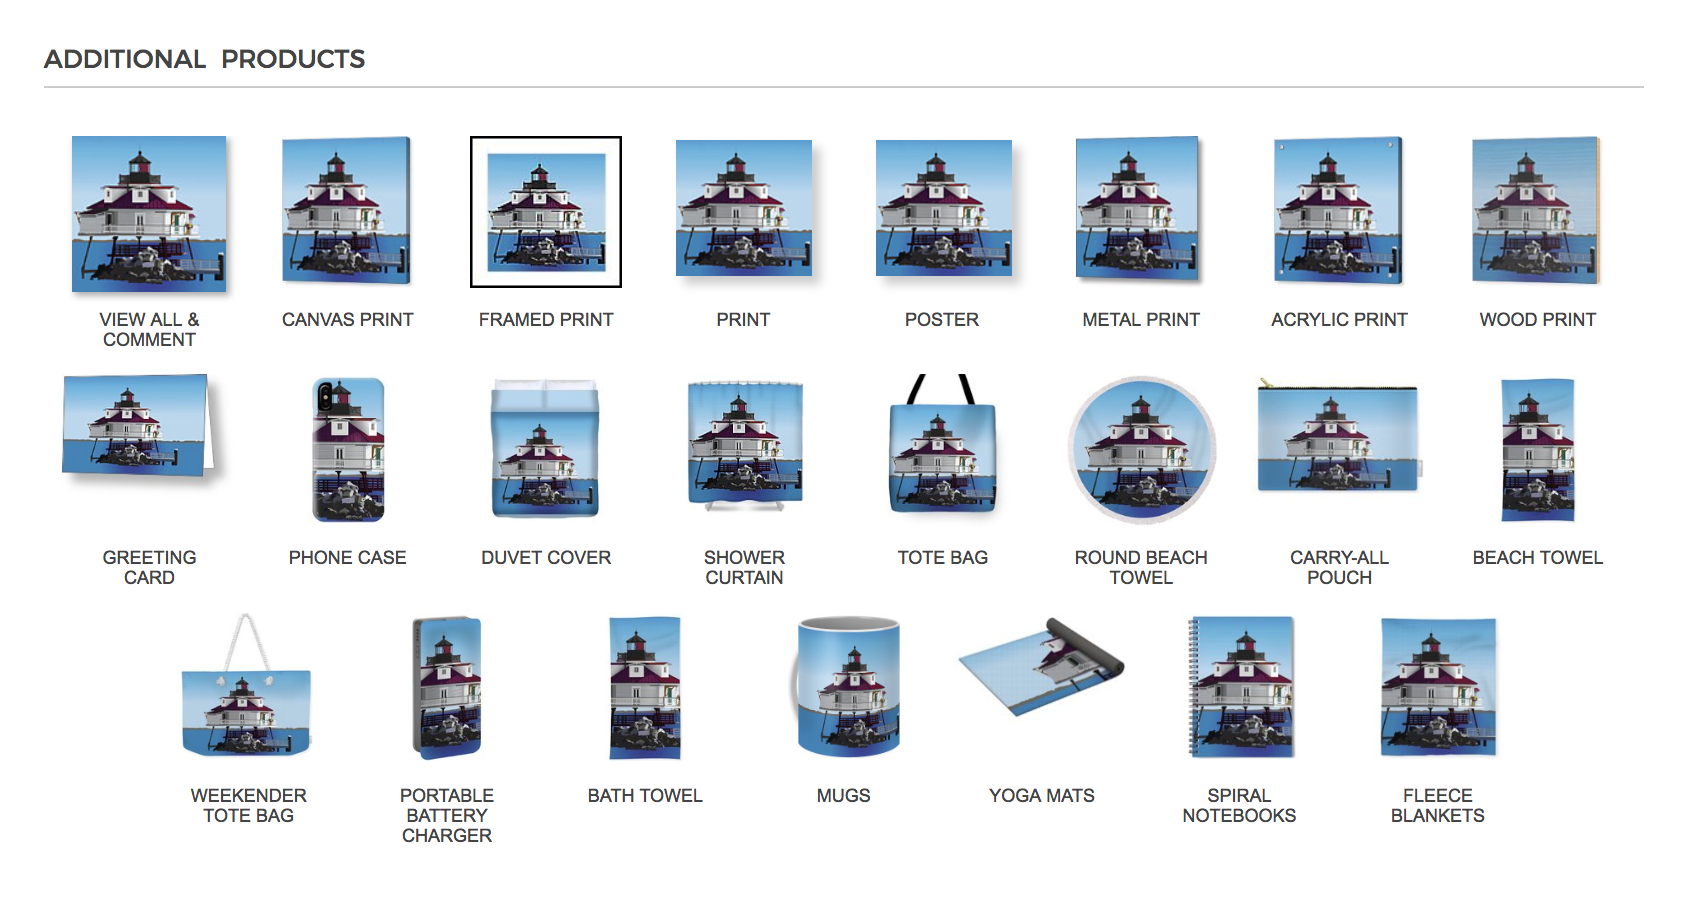 This fun collection is a digital painting of Thomas Point Shoal Lighthouse. This collection is available on a variety of wall art and home decor options, such as canvas prints, acrylic print, show curtains, duvet cover, greeting card, phone case, carry-all pouch, beach towels, yoga mat, tote bag, coffee mugs, spiral notebook, and fleece blanket.